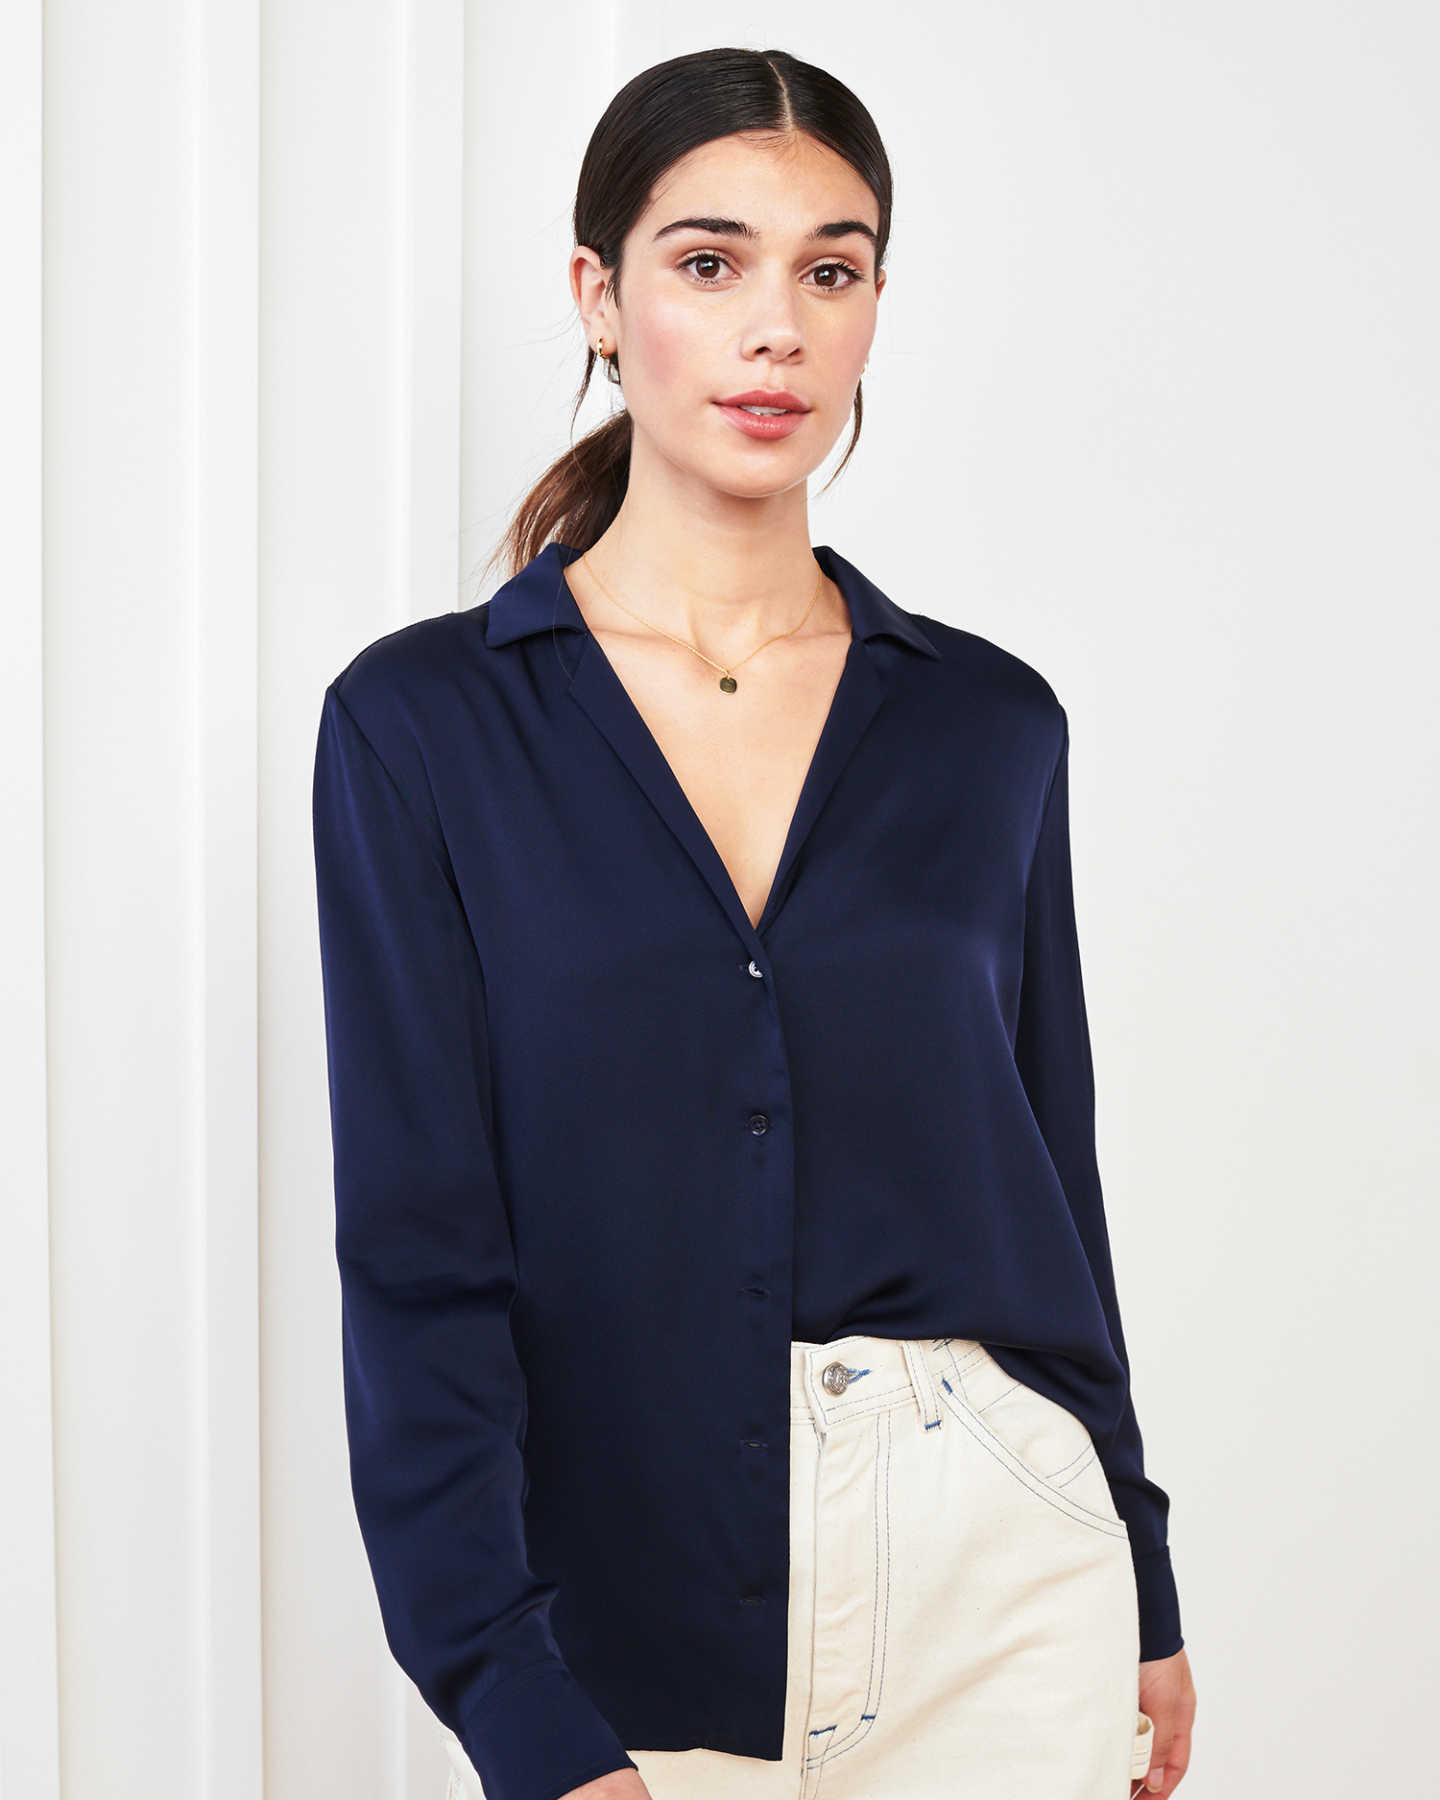 Washable Stretch Silk Notch Collar Blouse - Navy